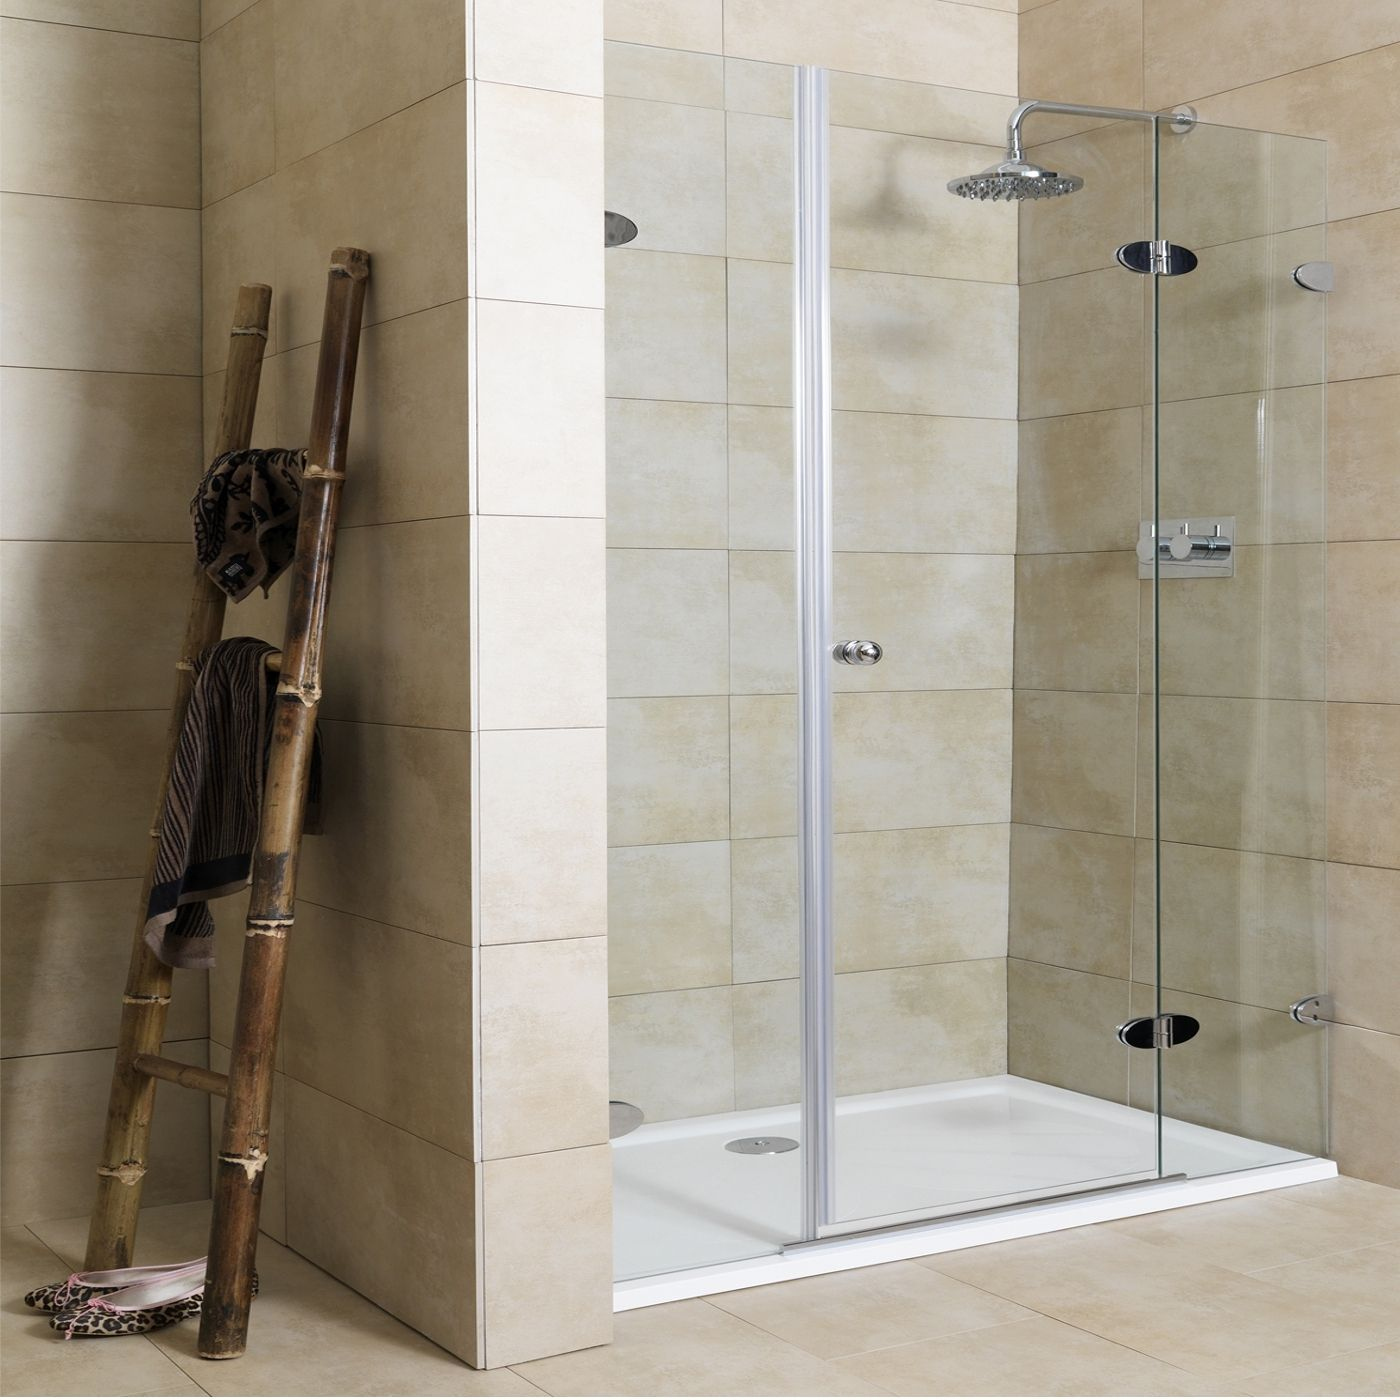 Bath shower doors glass frameless design interior home pinterest shower Bathroom glass doors design